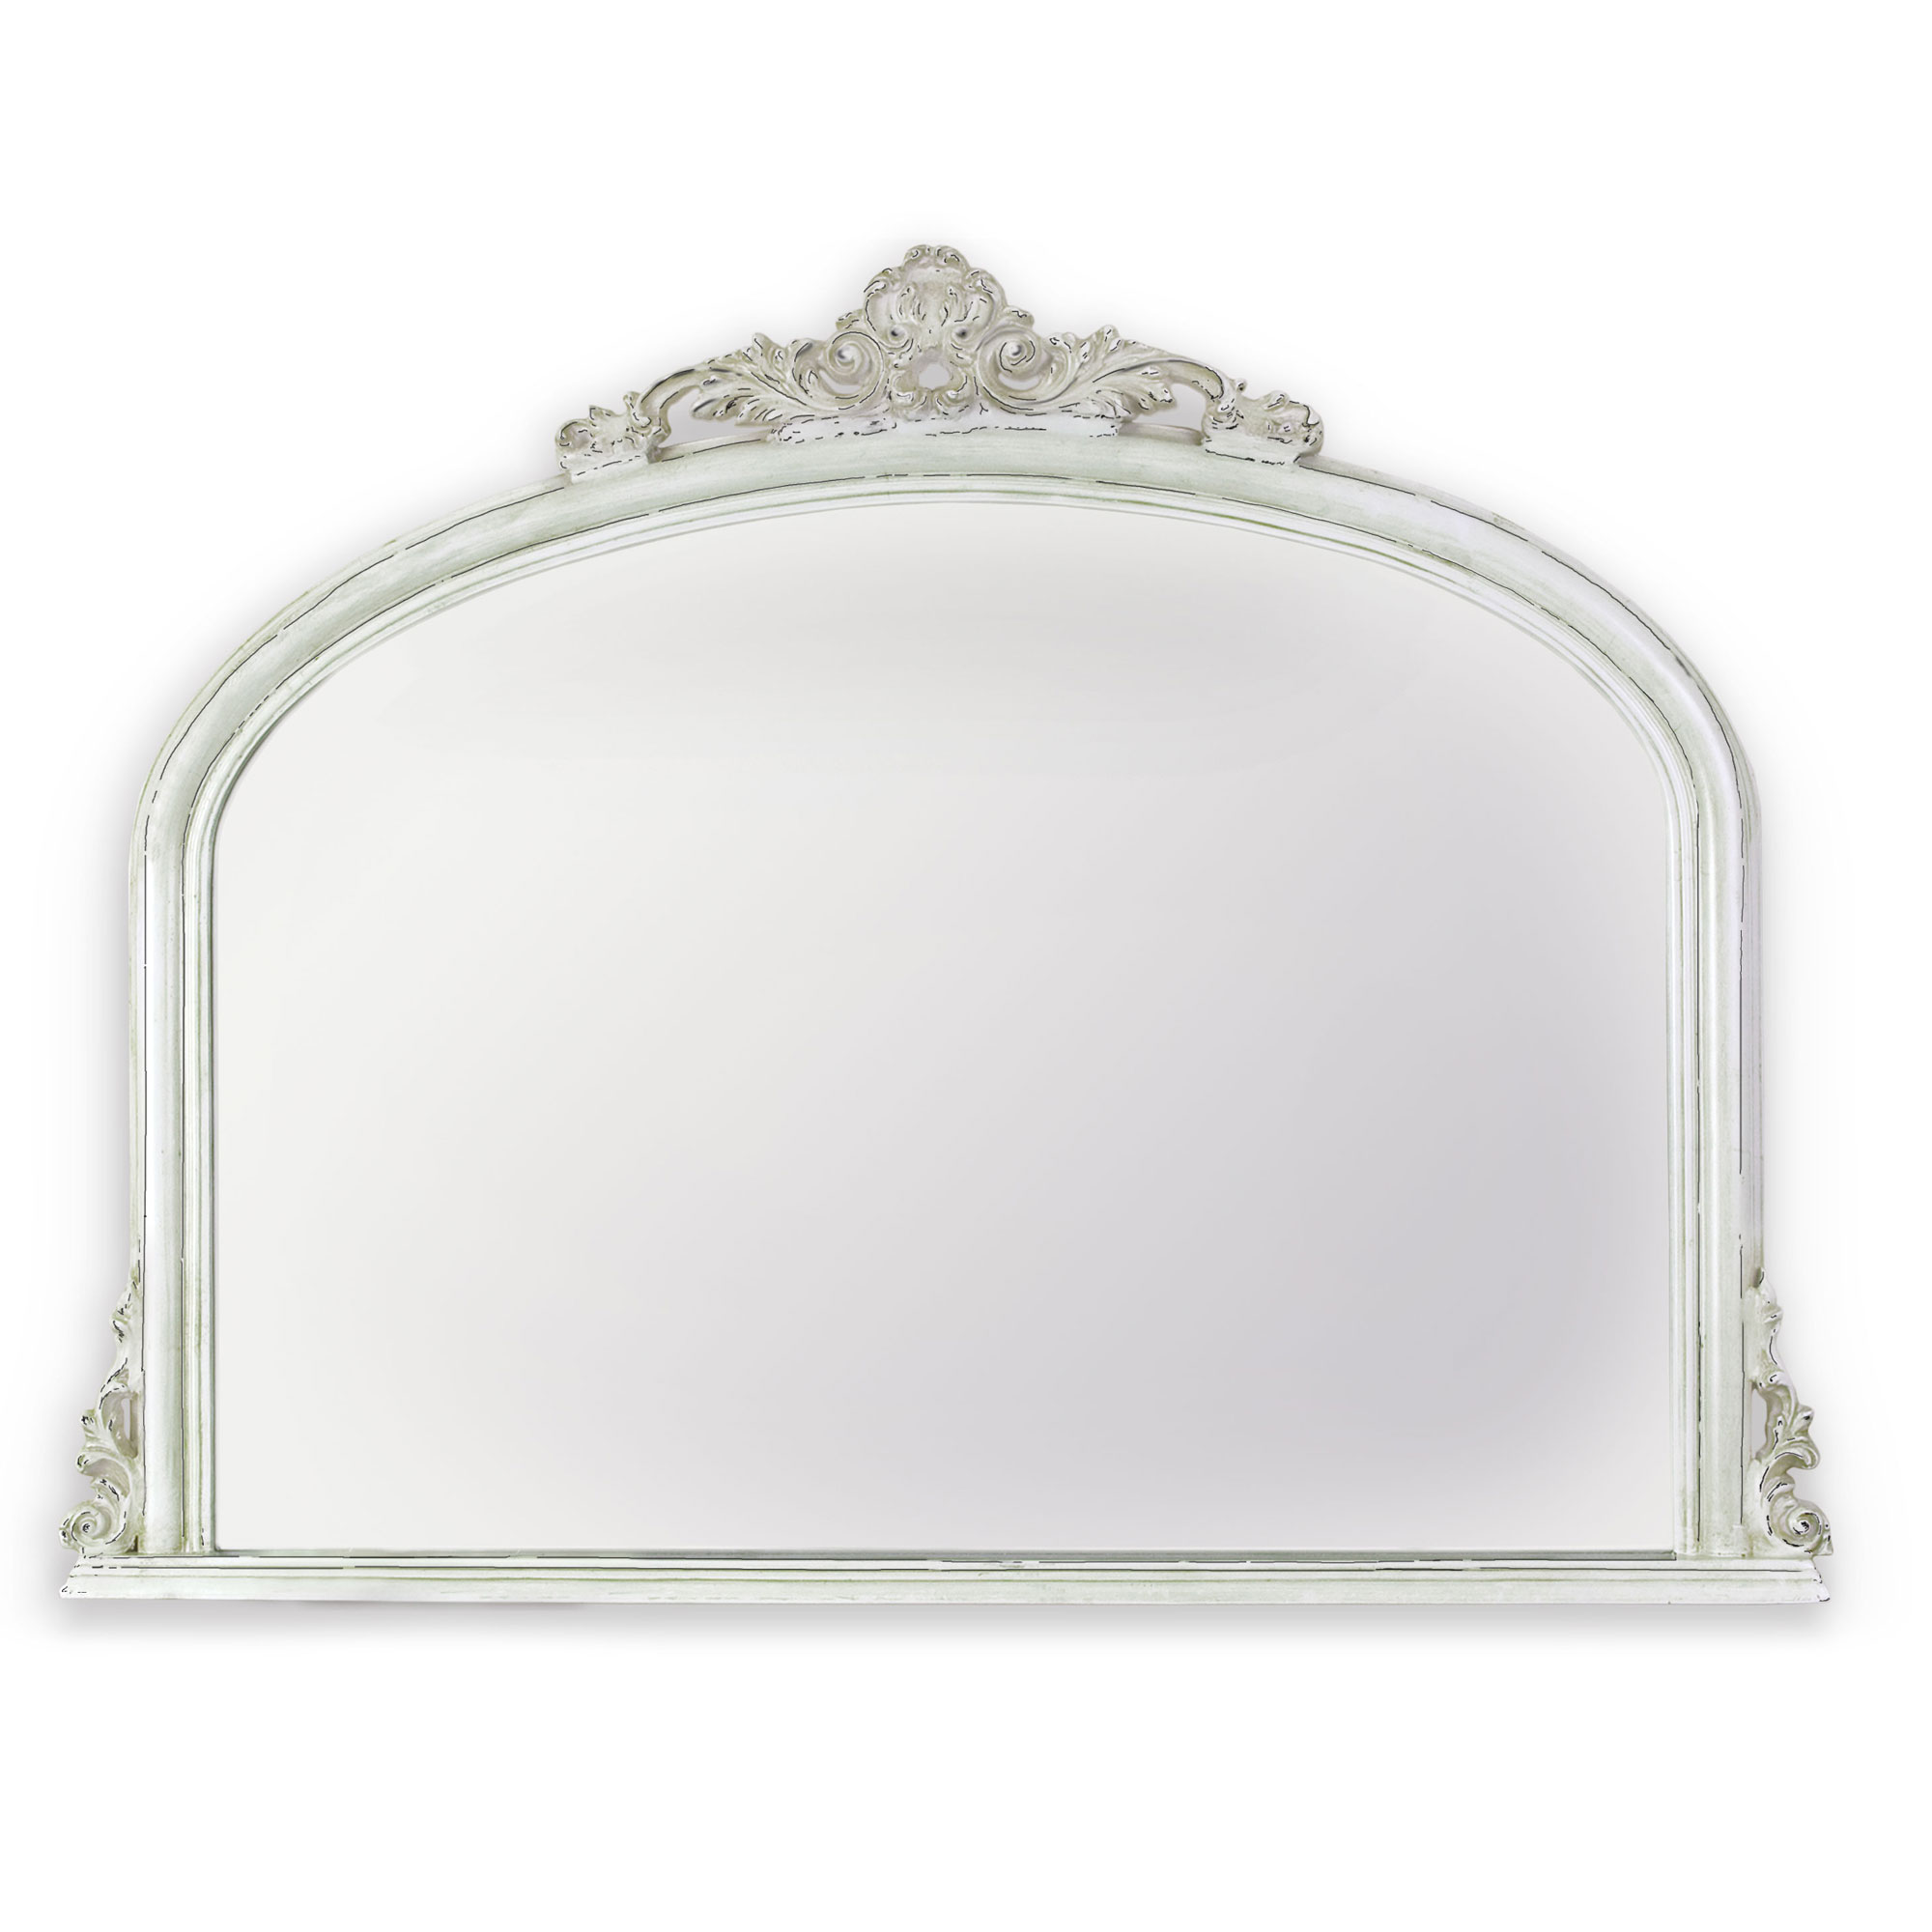 Amarone Distressed White Crowned Mirror 720x960mm